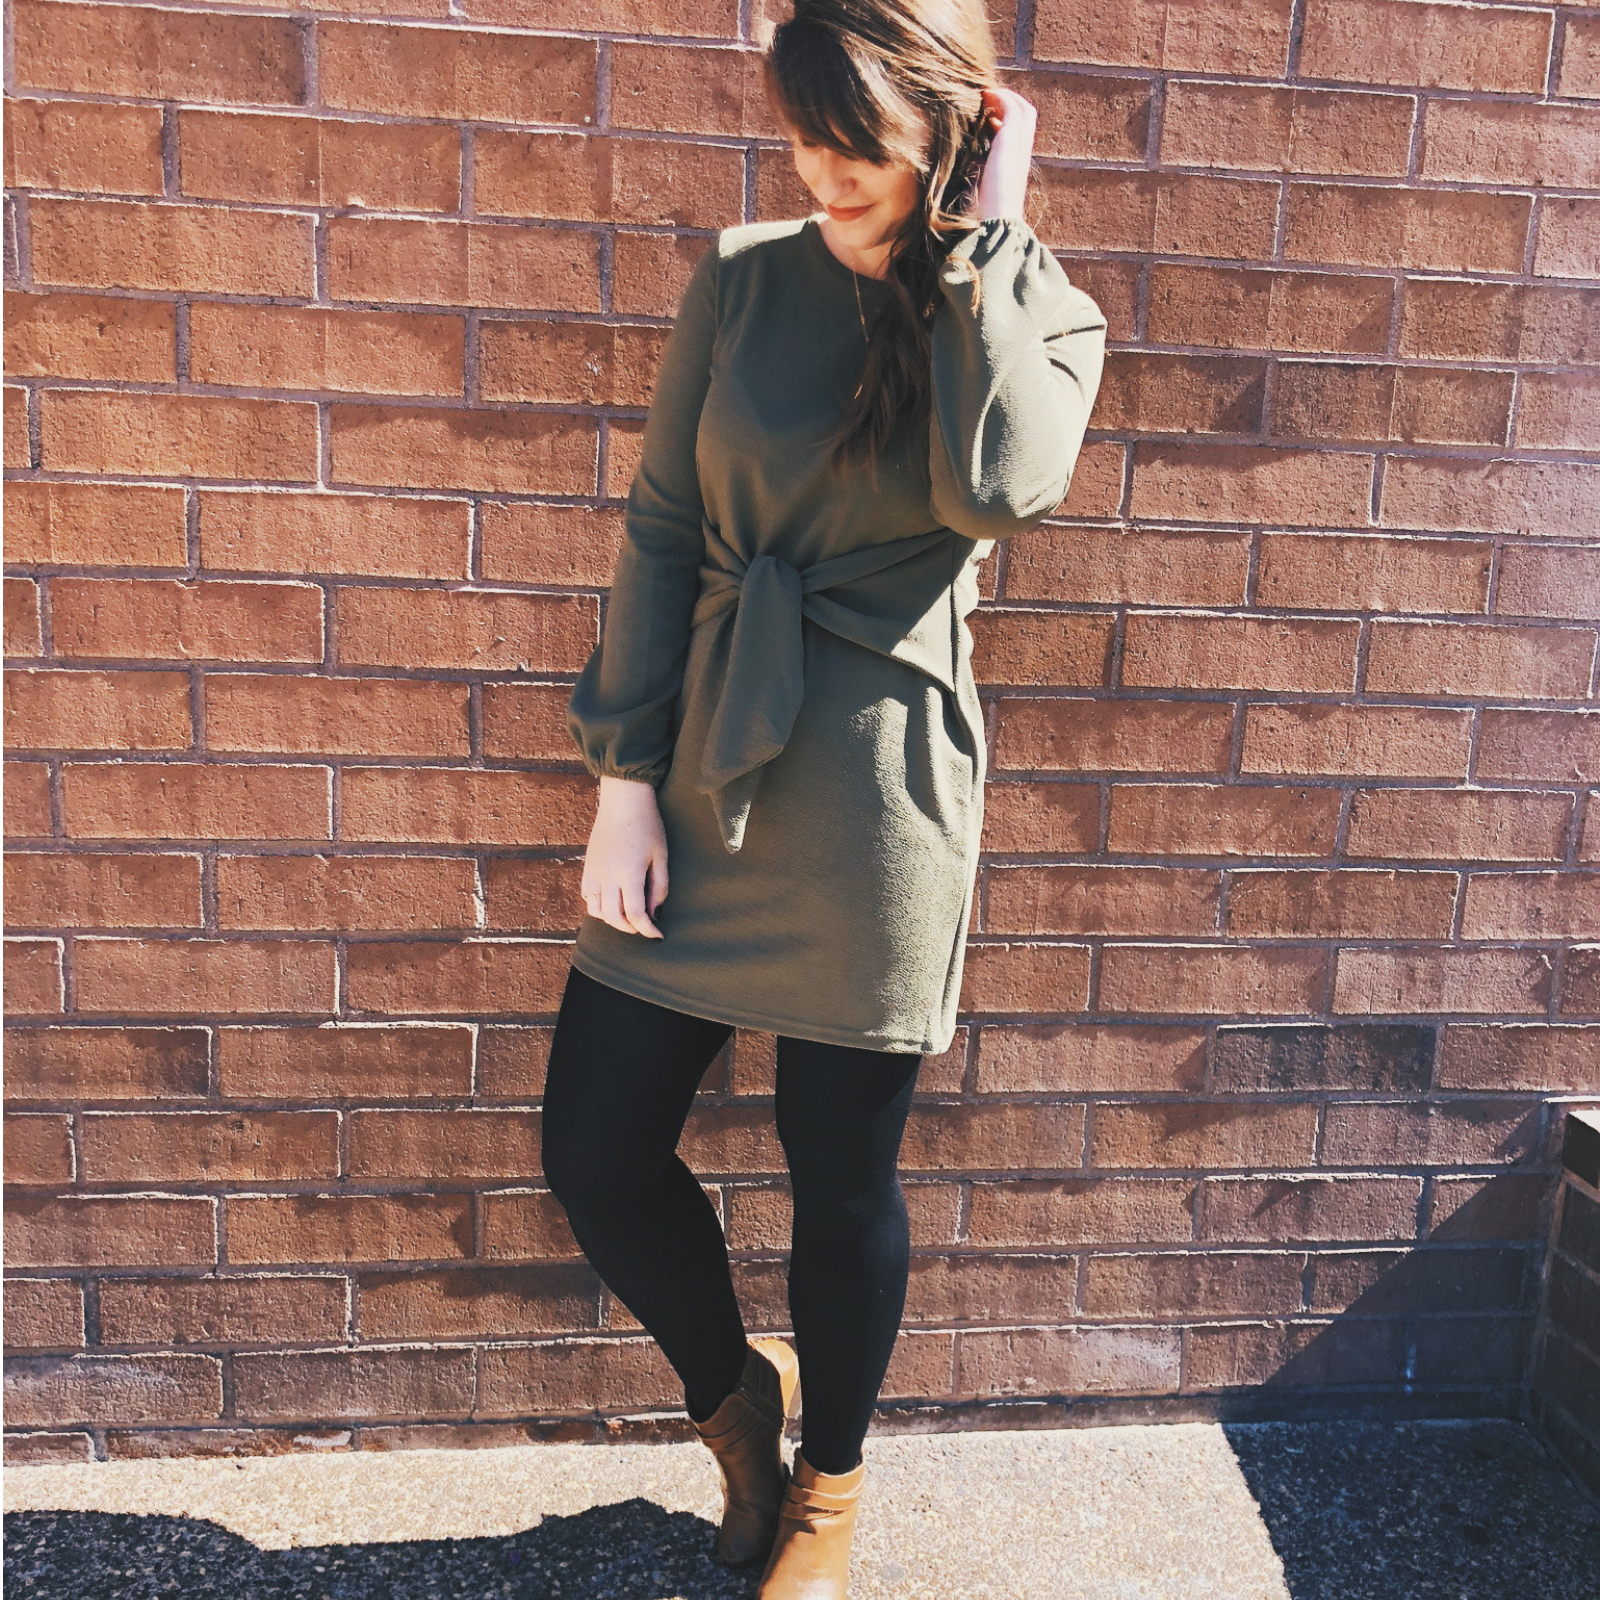 Girl in green dress standing in front of a brick wall